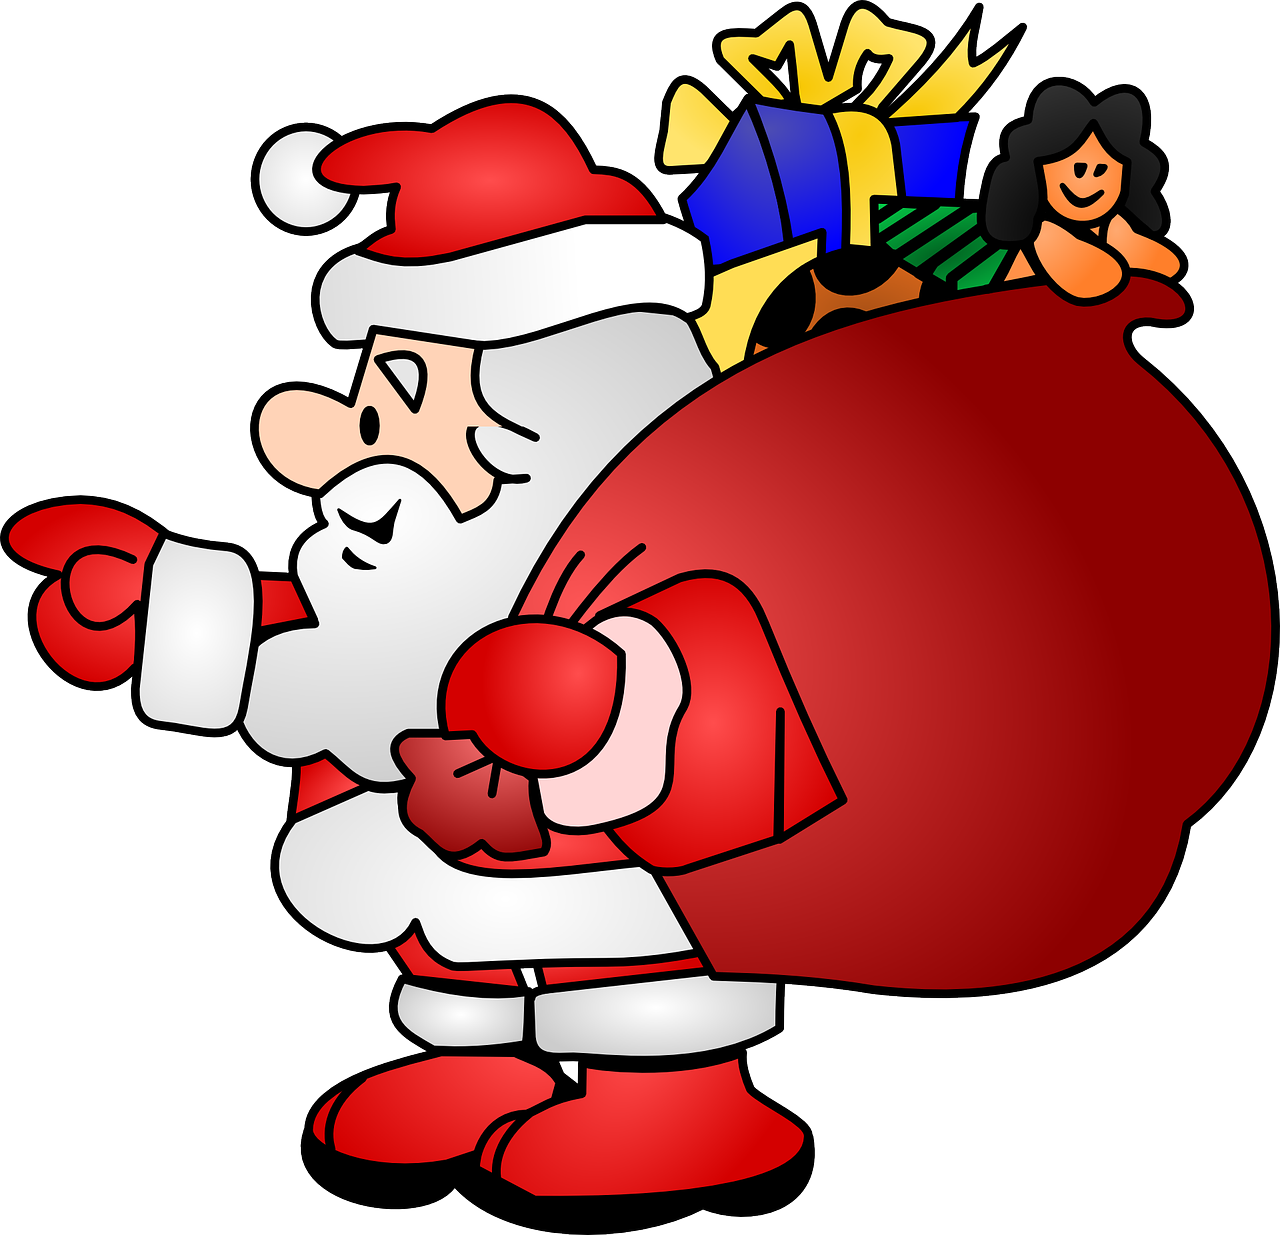 Santa reading a book clipart banner black and white Directory /images/clip-art banner black and white